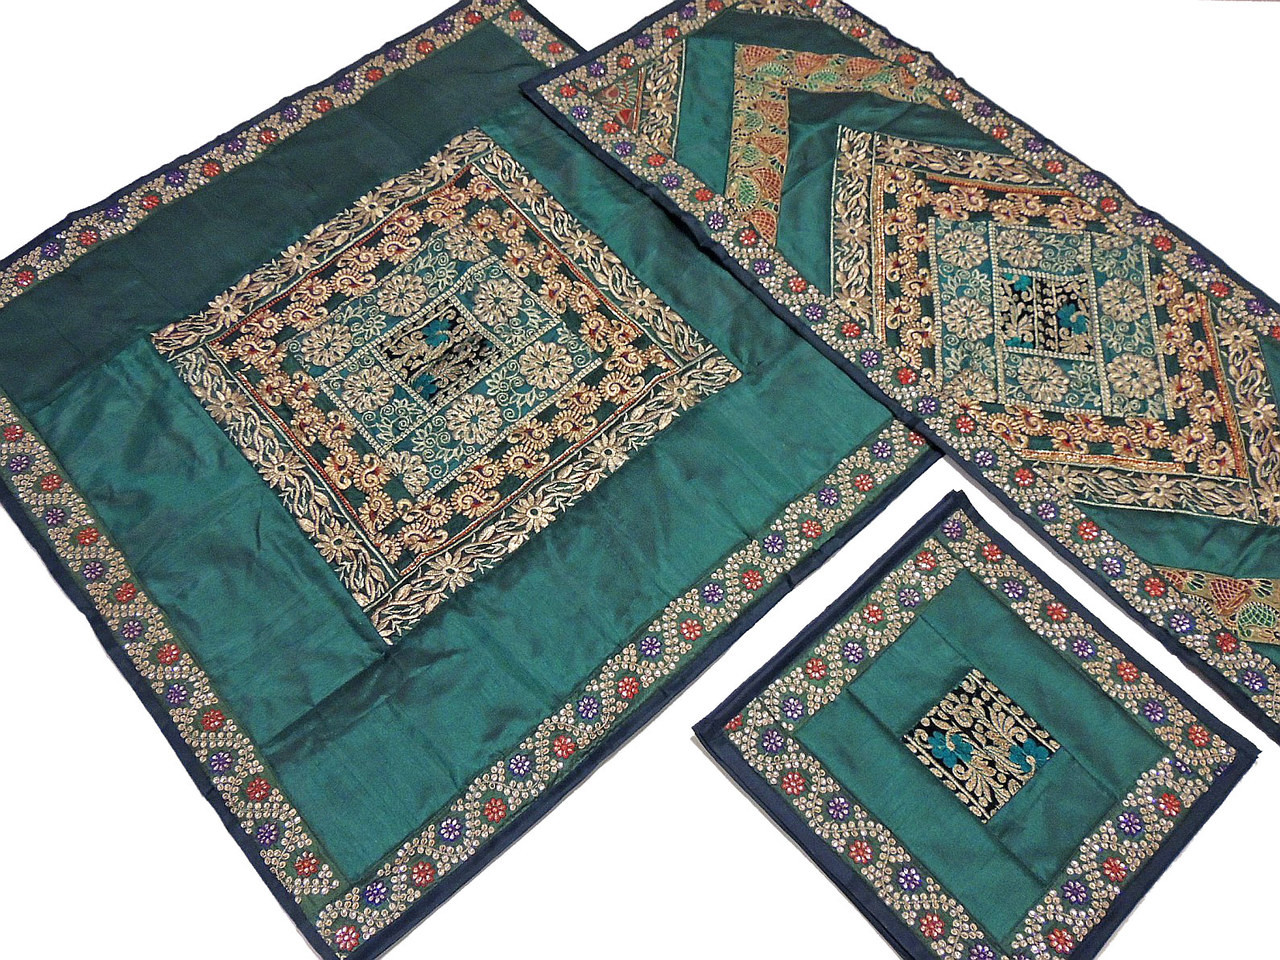 Decorative Table Linens Set - Green Fine Embroidery Designer Overlay Runner Placemats.  sc 1 st  NovaHaat & Decorative Table Linens Set - Green Fine Embroidery Designer Overlay ...